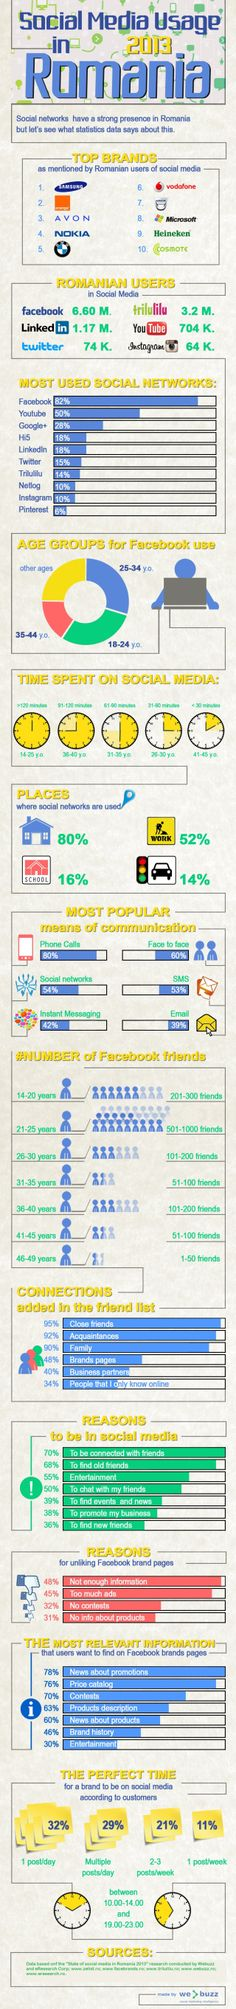 Social Media usage in Romania 2013 #infografia #infographic #socialmedia